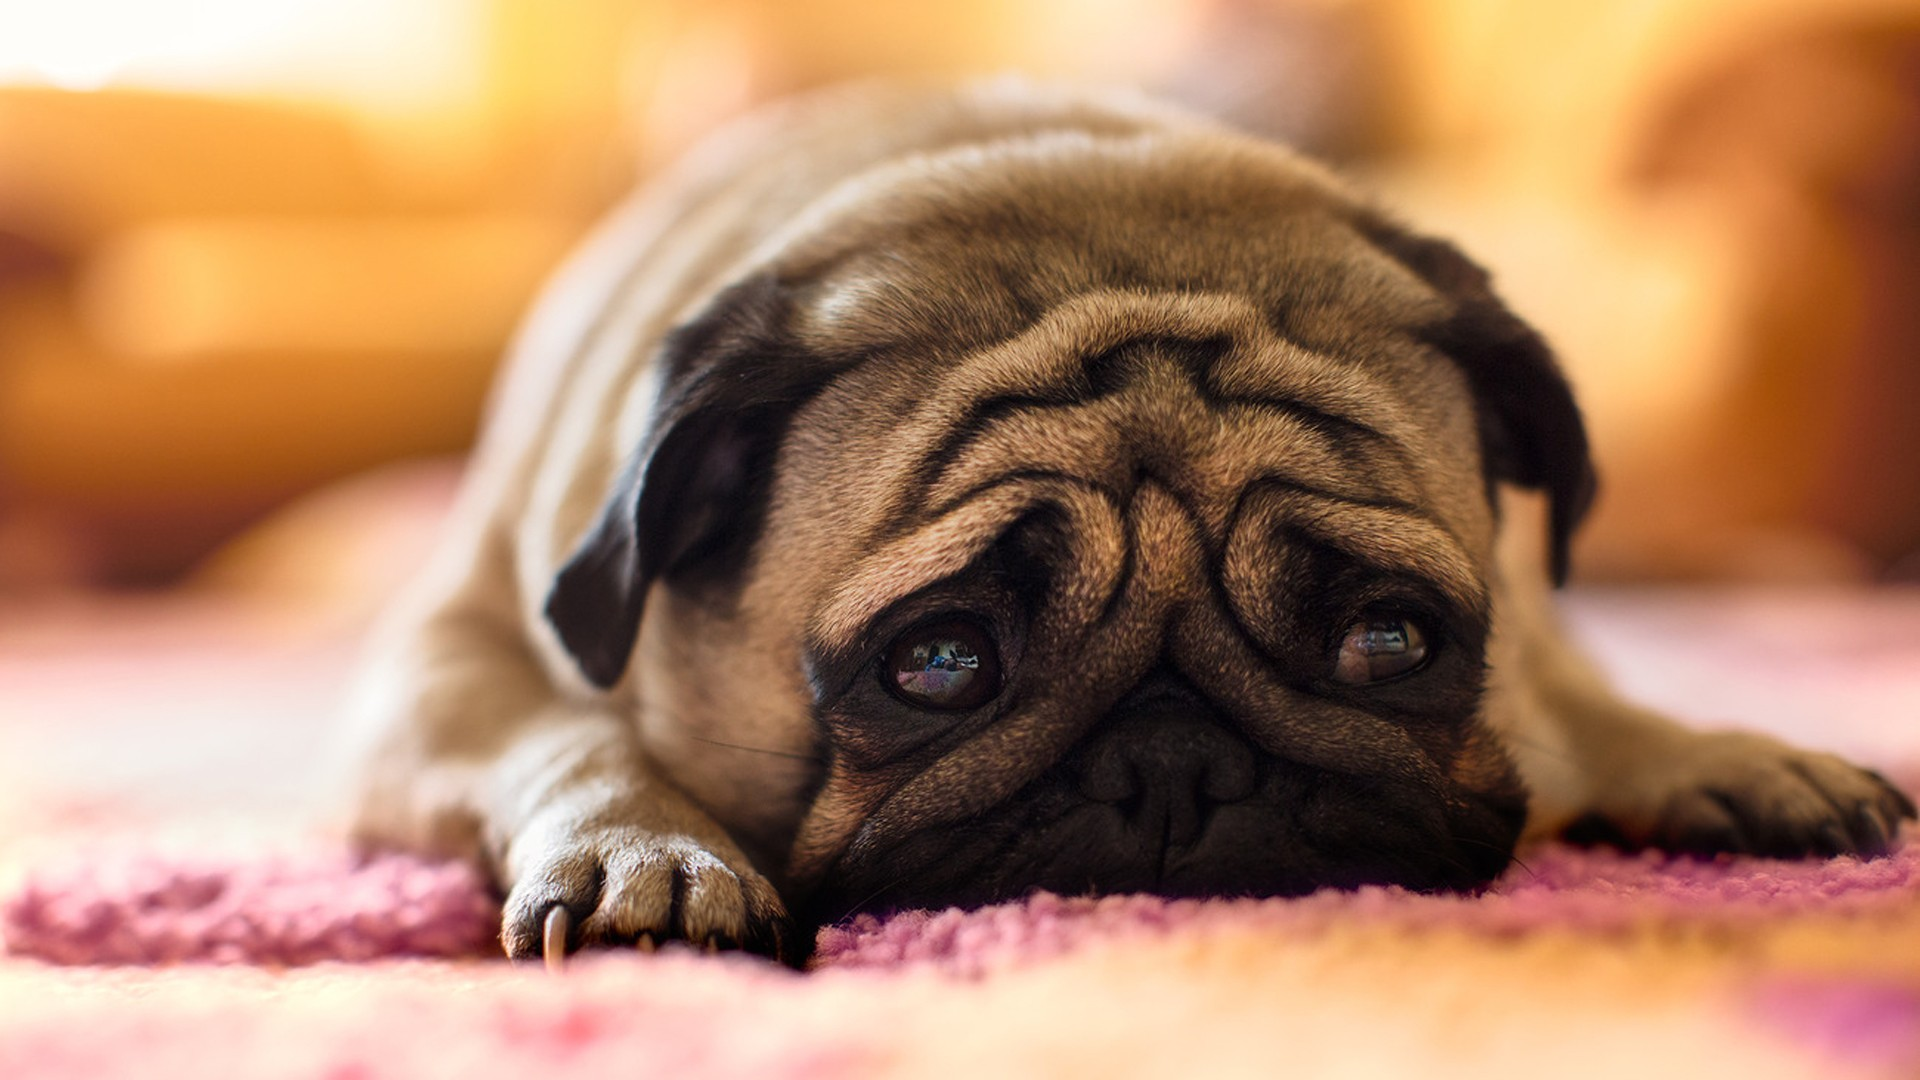 Pug Animal HD Desktop Wallpaper HD Desktop Wallpaper 1920x1080